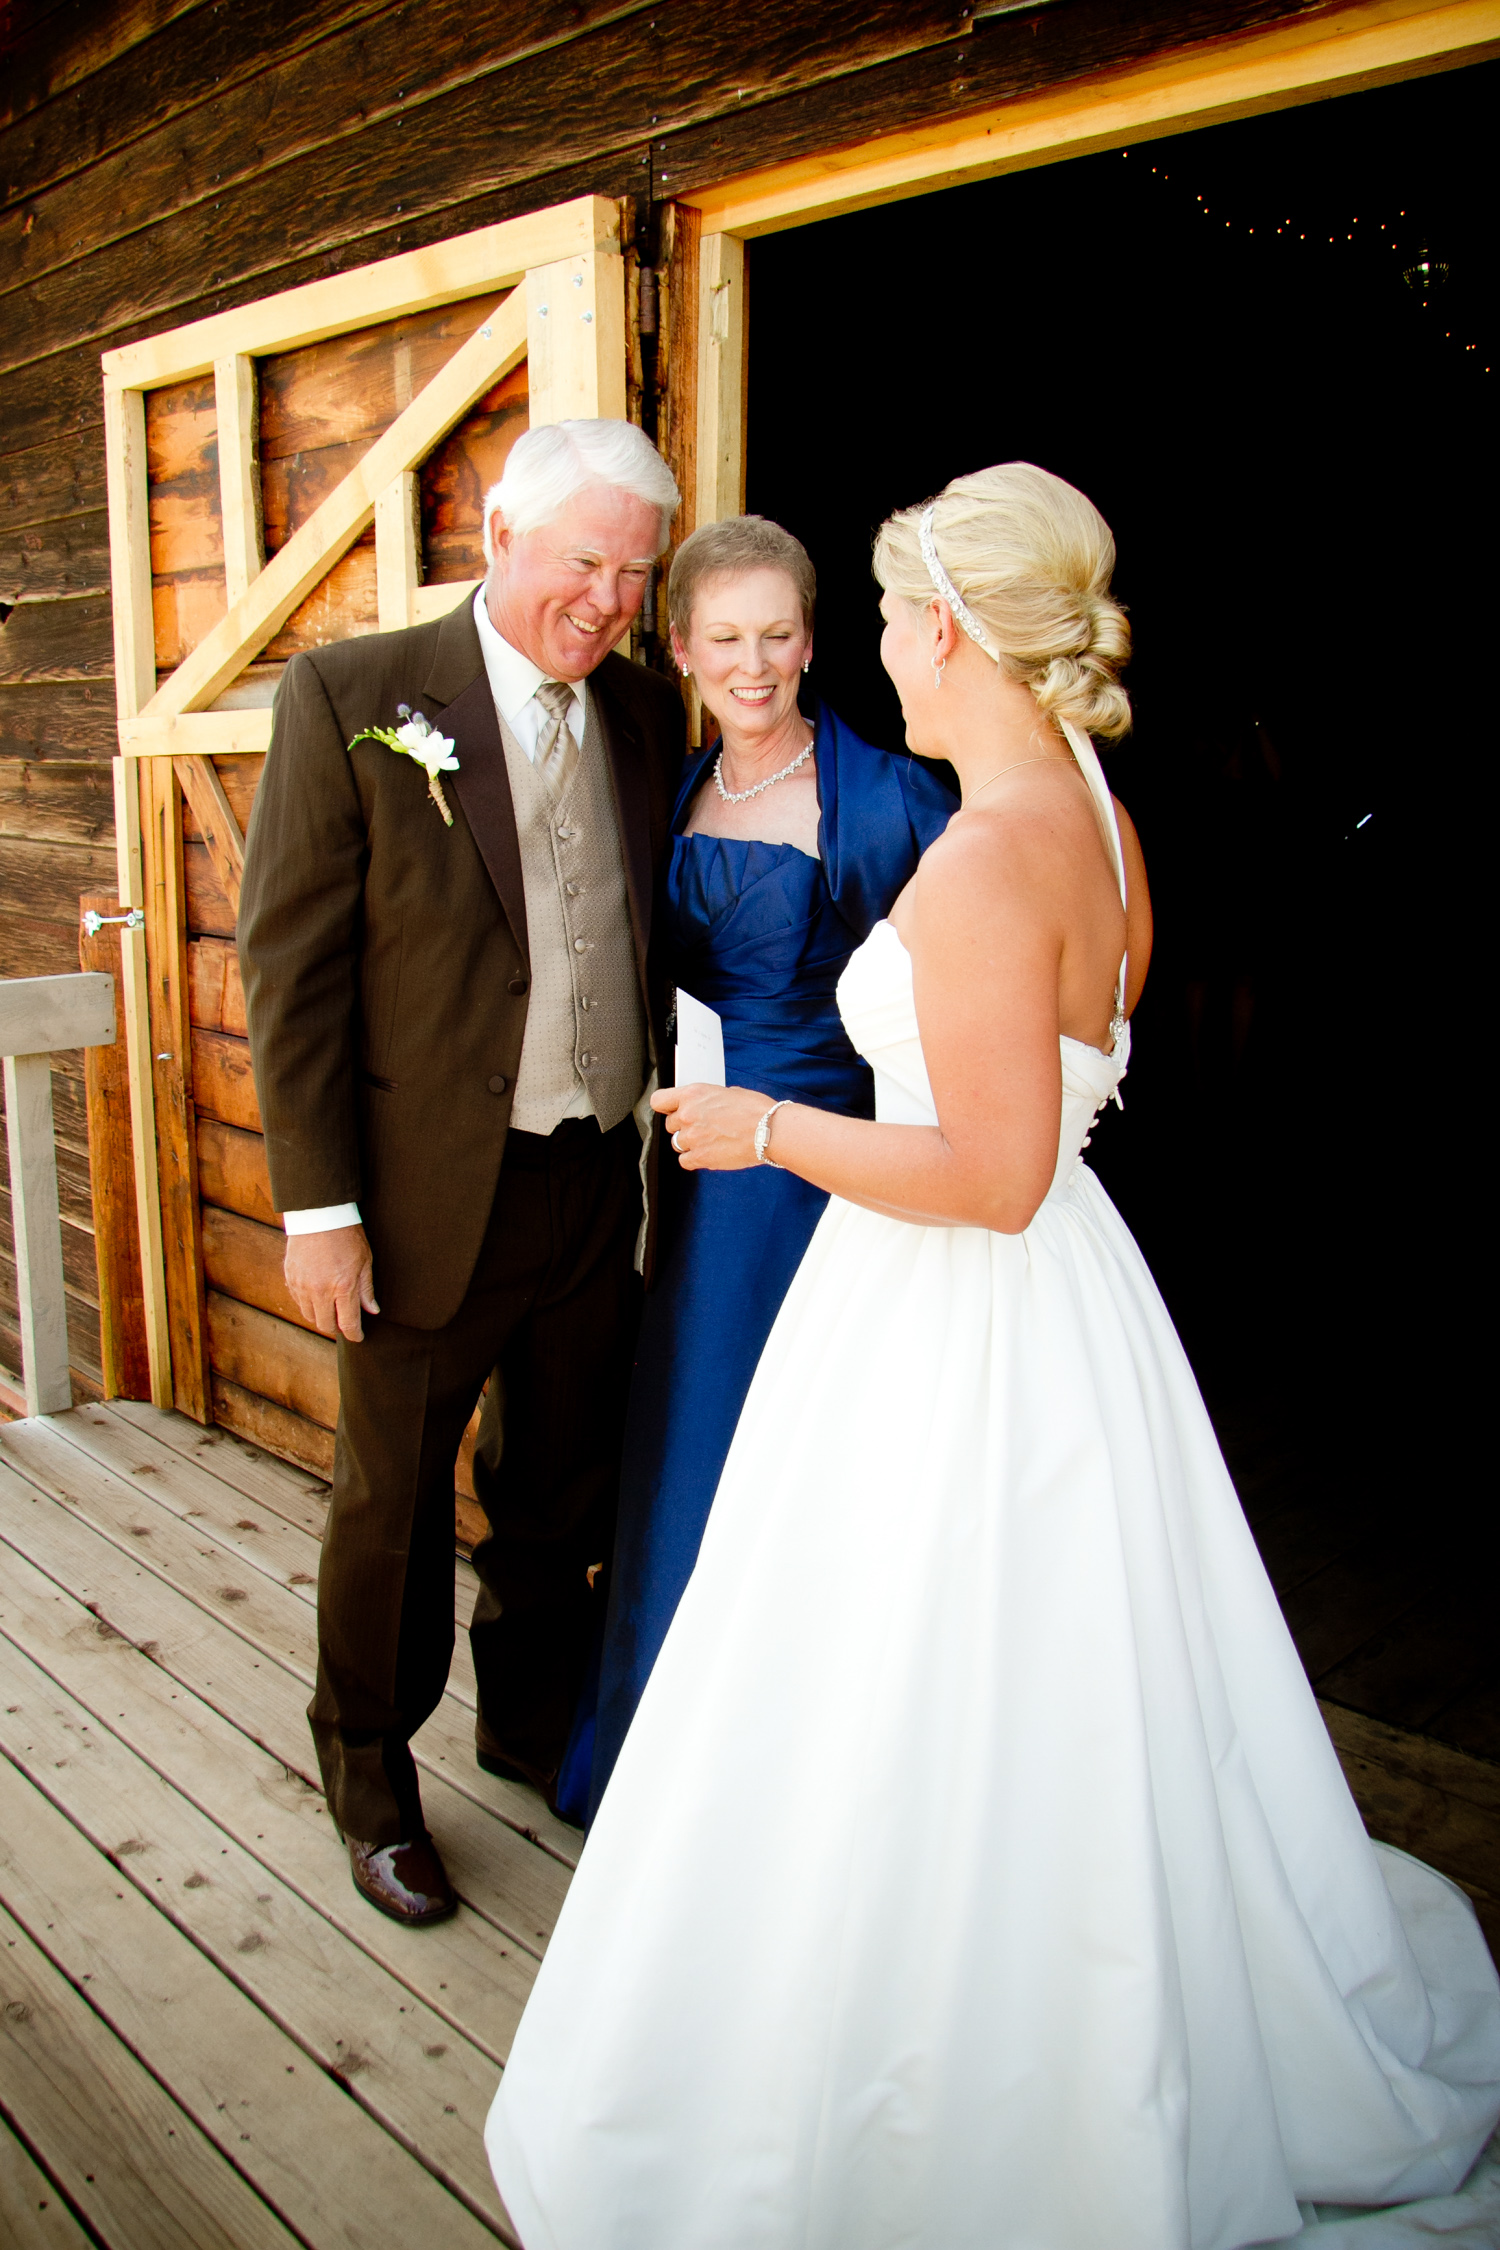 Steamboat_Springs_Wedding_013.JPG